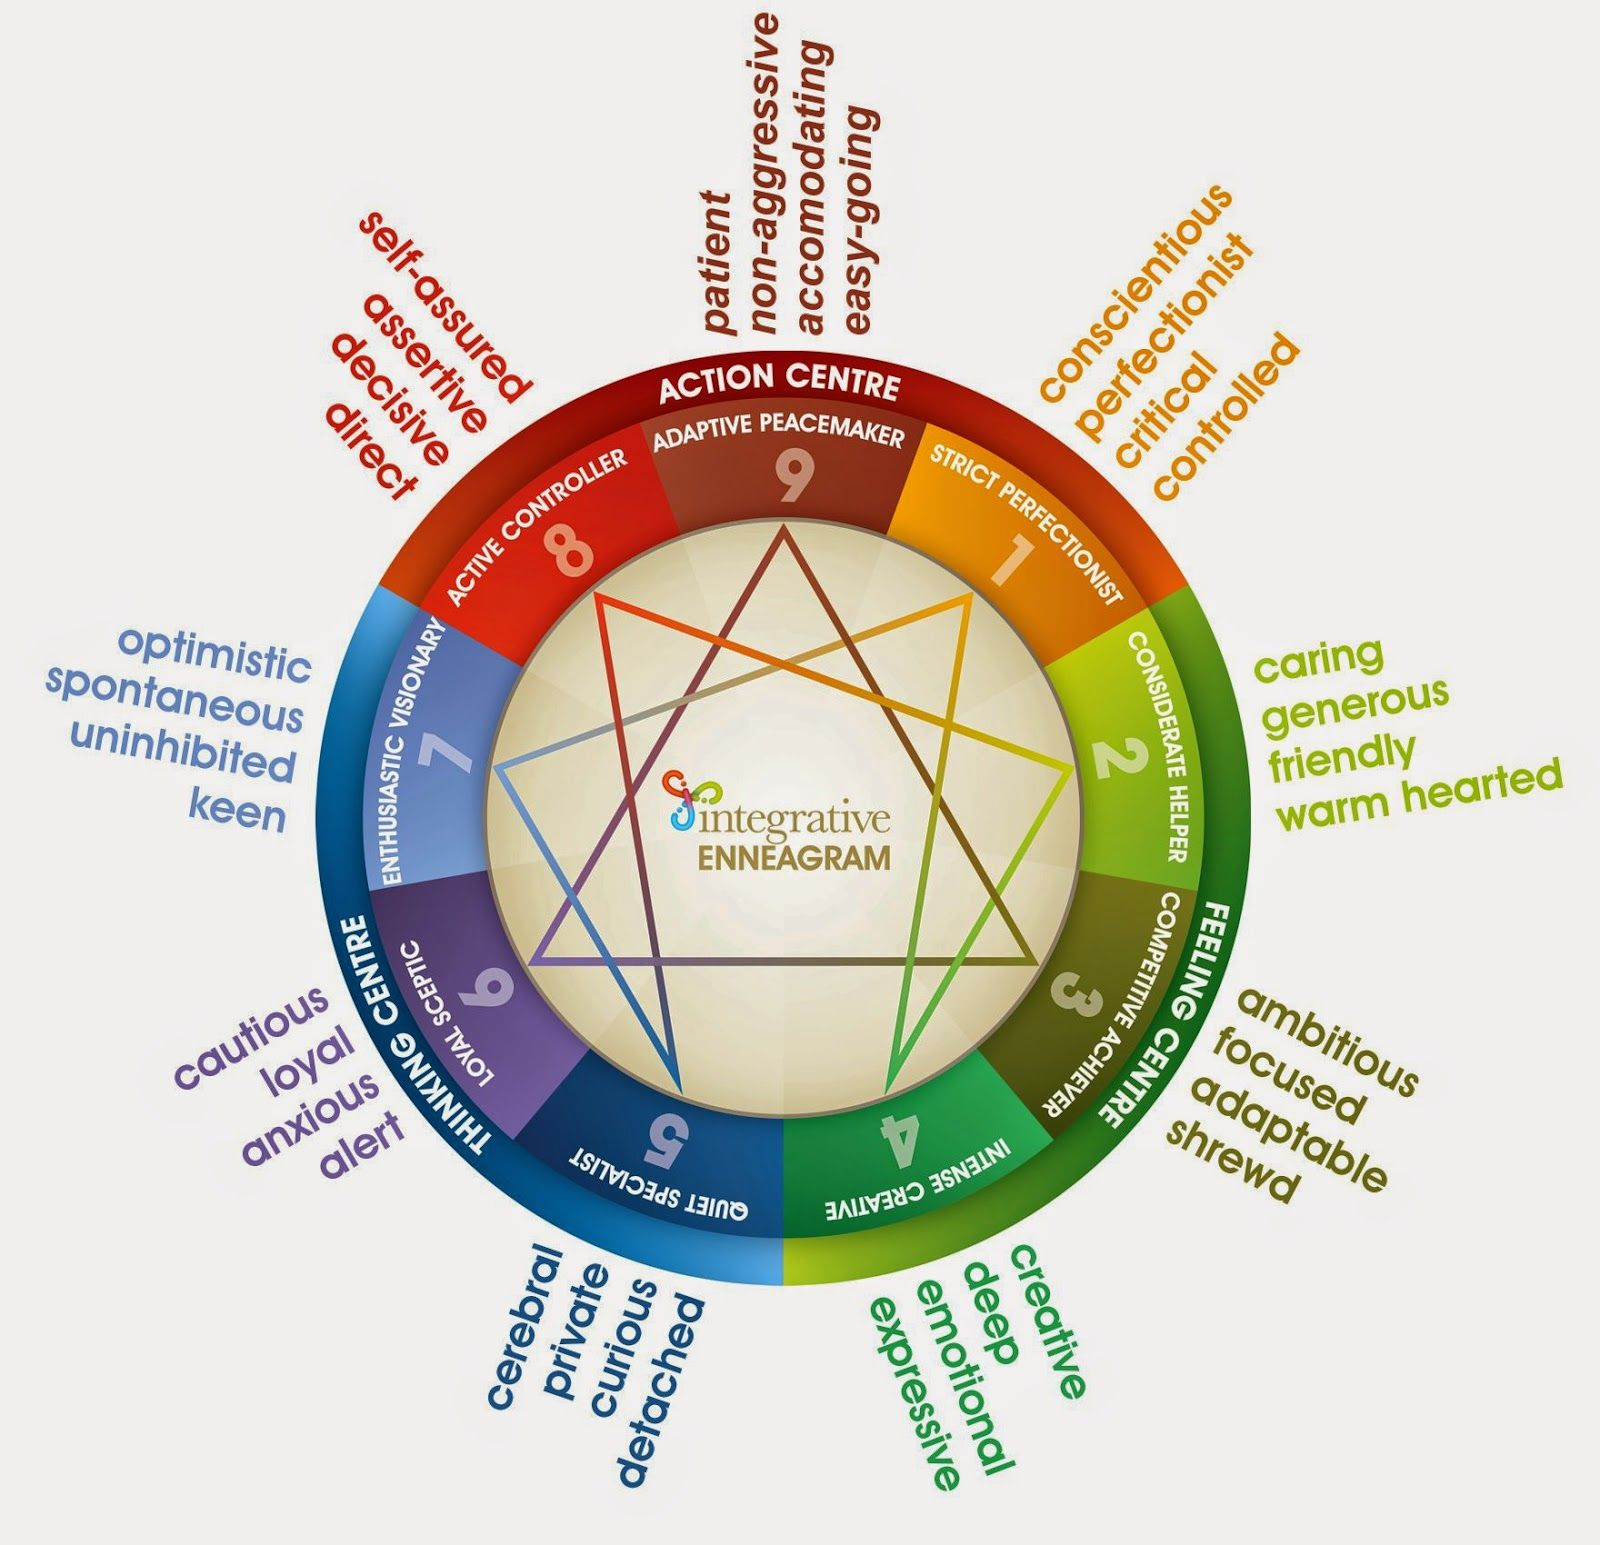 enneagram 7 and 4 relationship bases